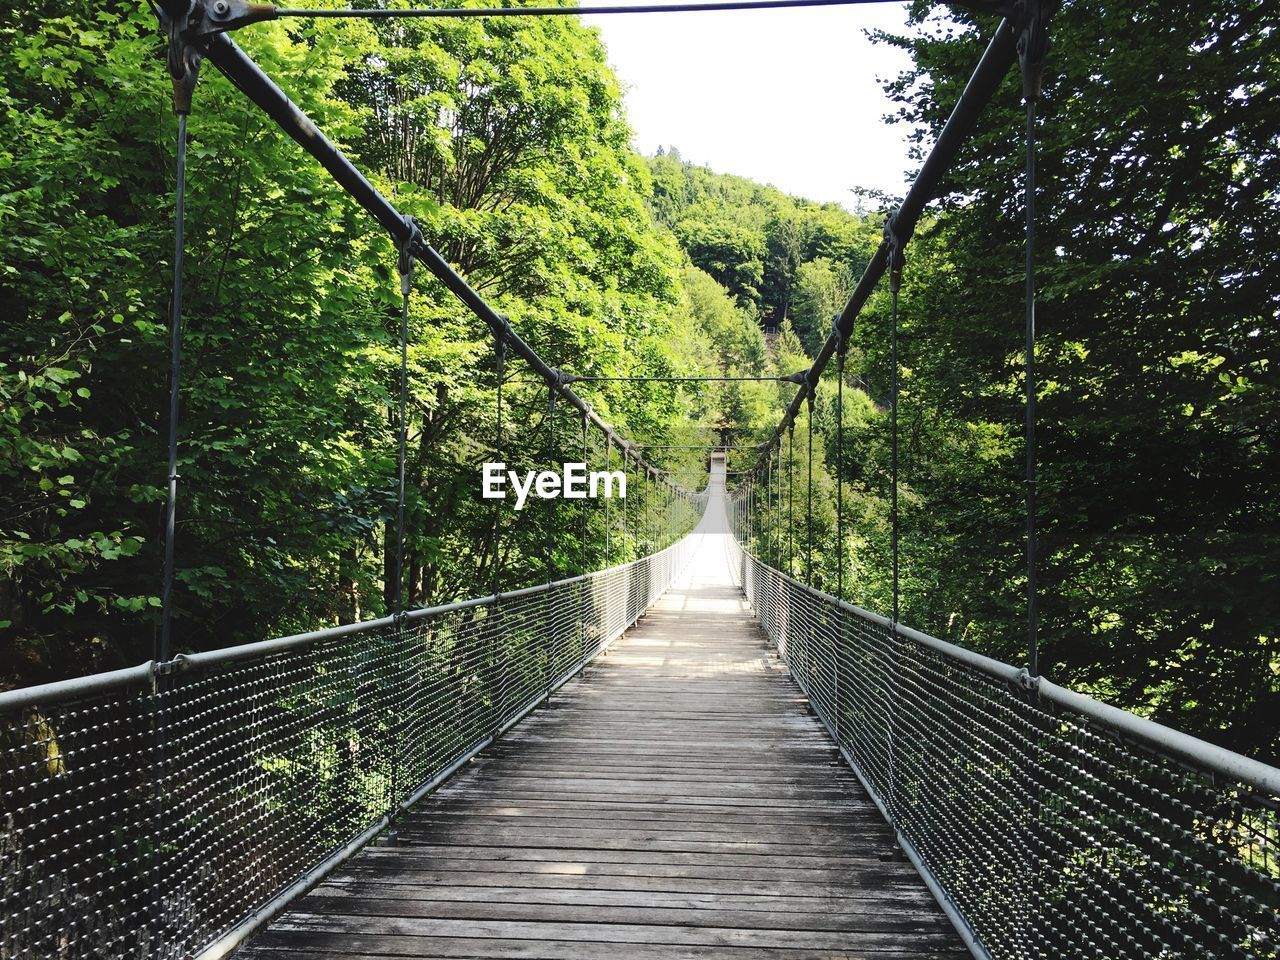 tree, plant, the way forward, direction, forest, connection, nature, bridge, footbridge, green color, rope bridge, tranquility, foliage, diminishing perspective, day, lush foliage, land, bridge - man made structure, no people, growth, outdoors, long